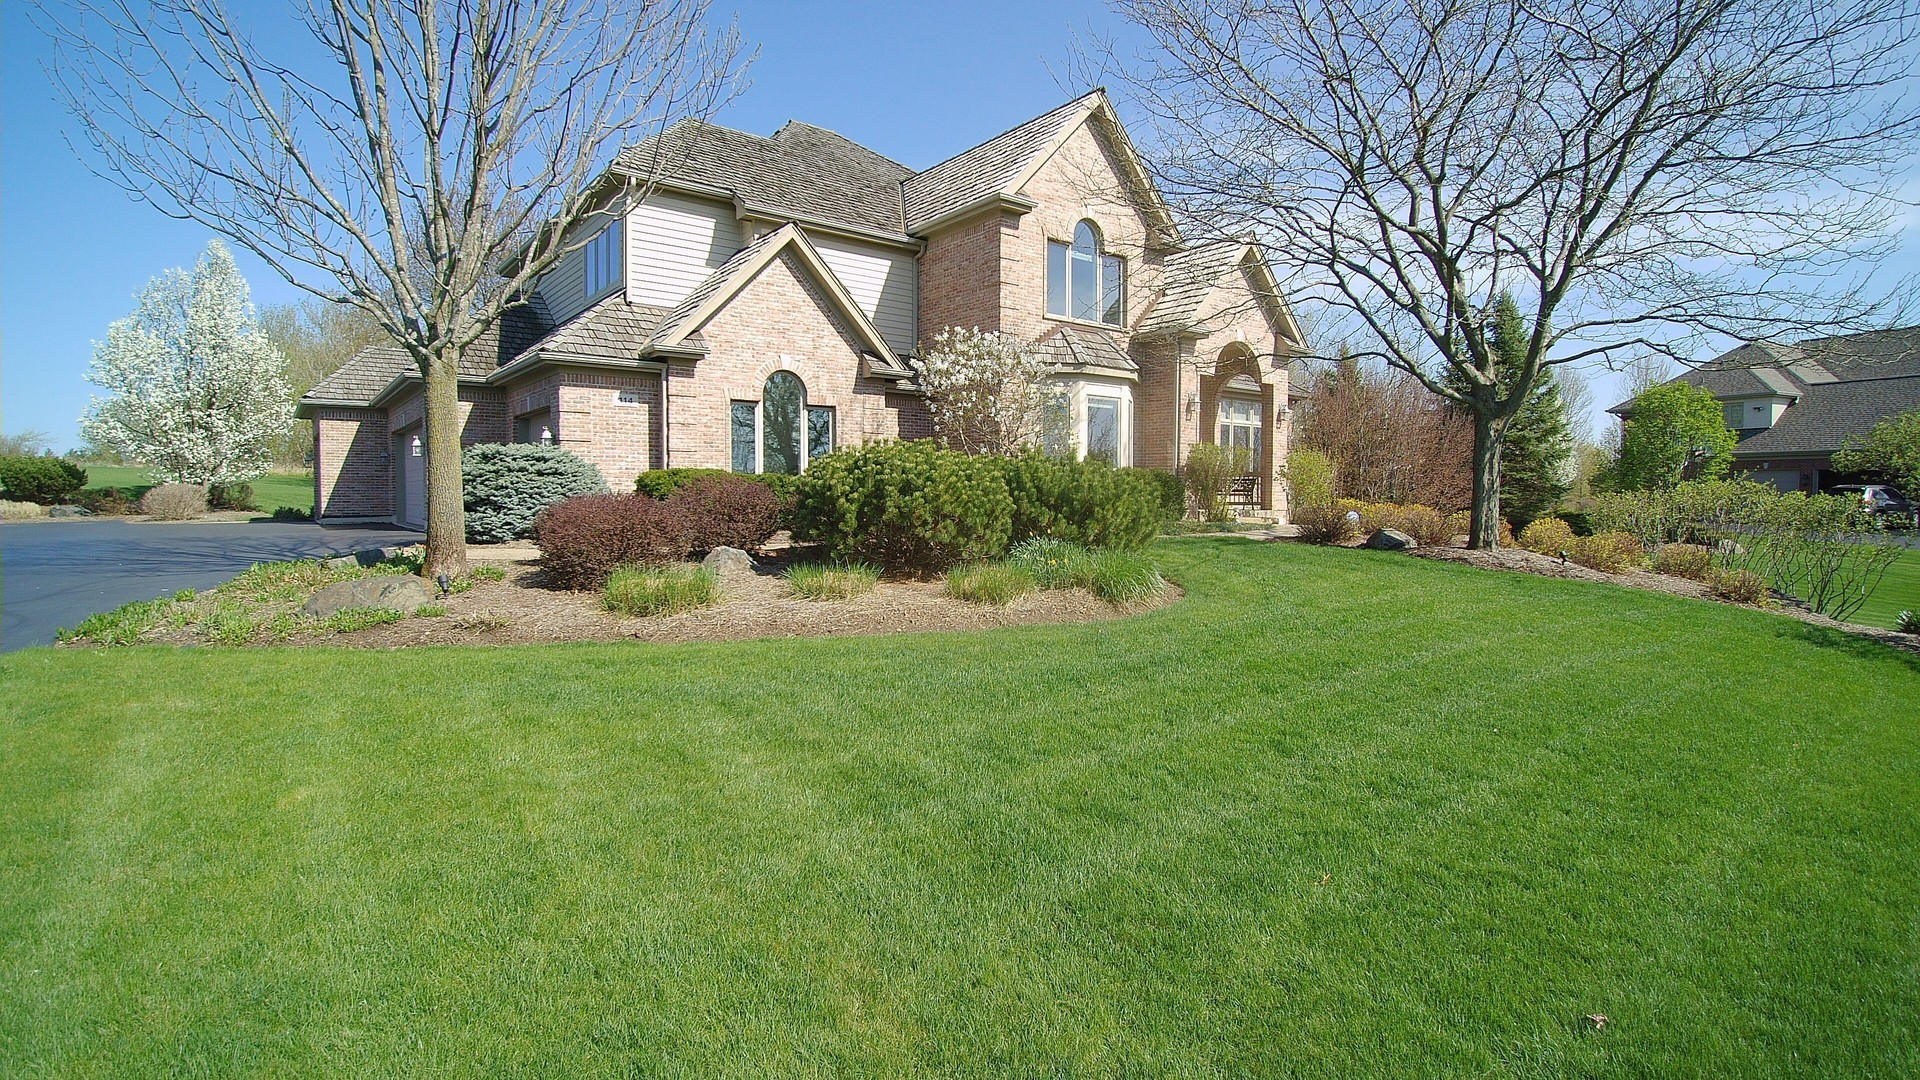 114 Governors Way, Hawthorn Woods, Illinois 60047